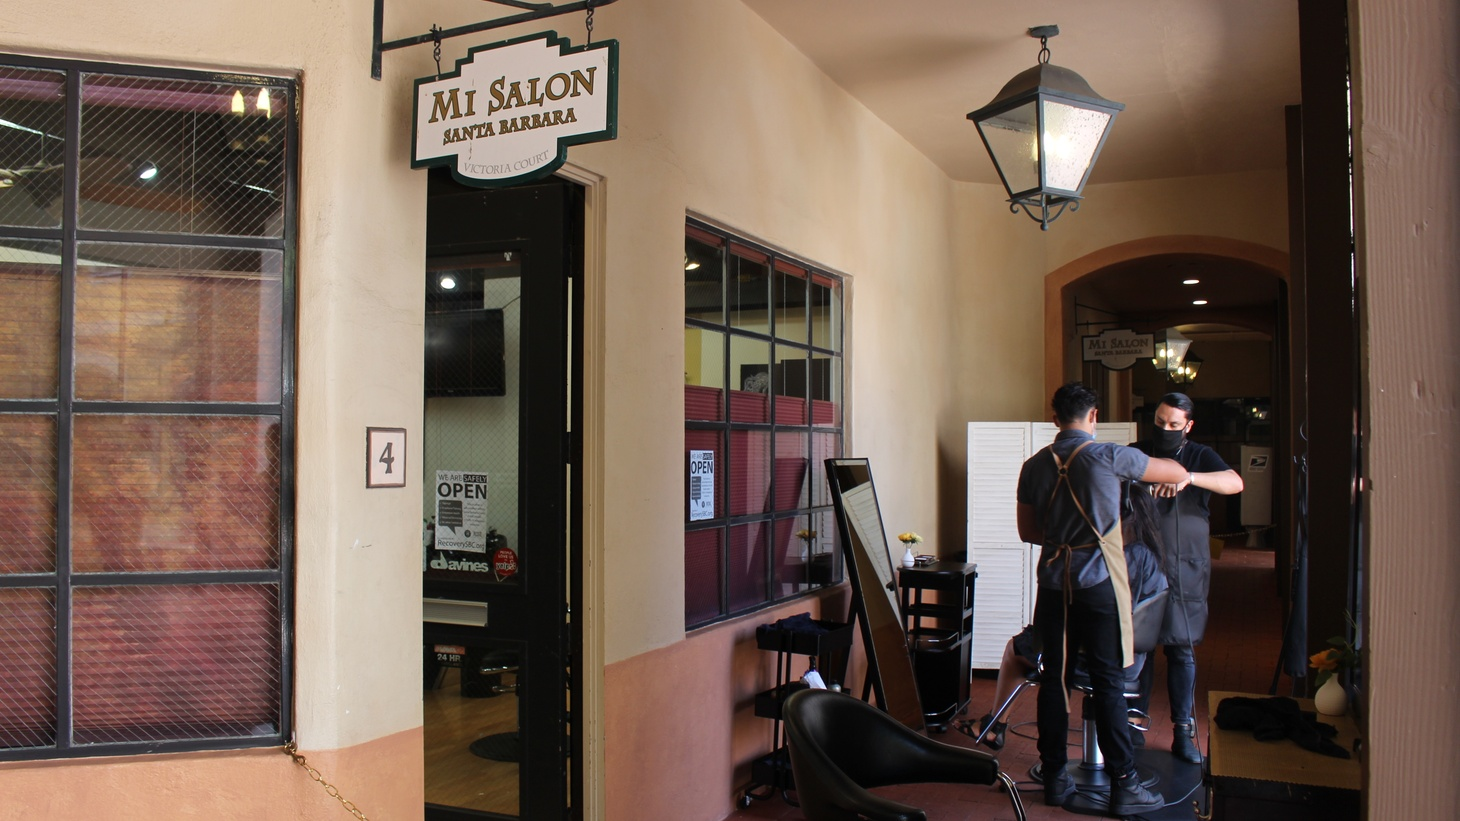 Mi Salon in Santa Barbara is offering dry haircuts outdoors.